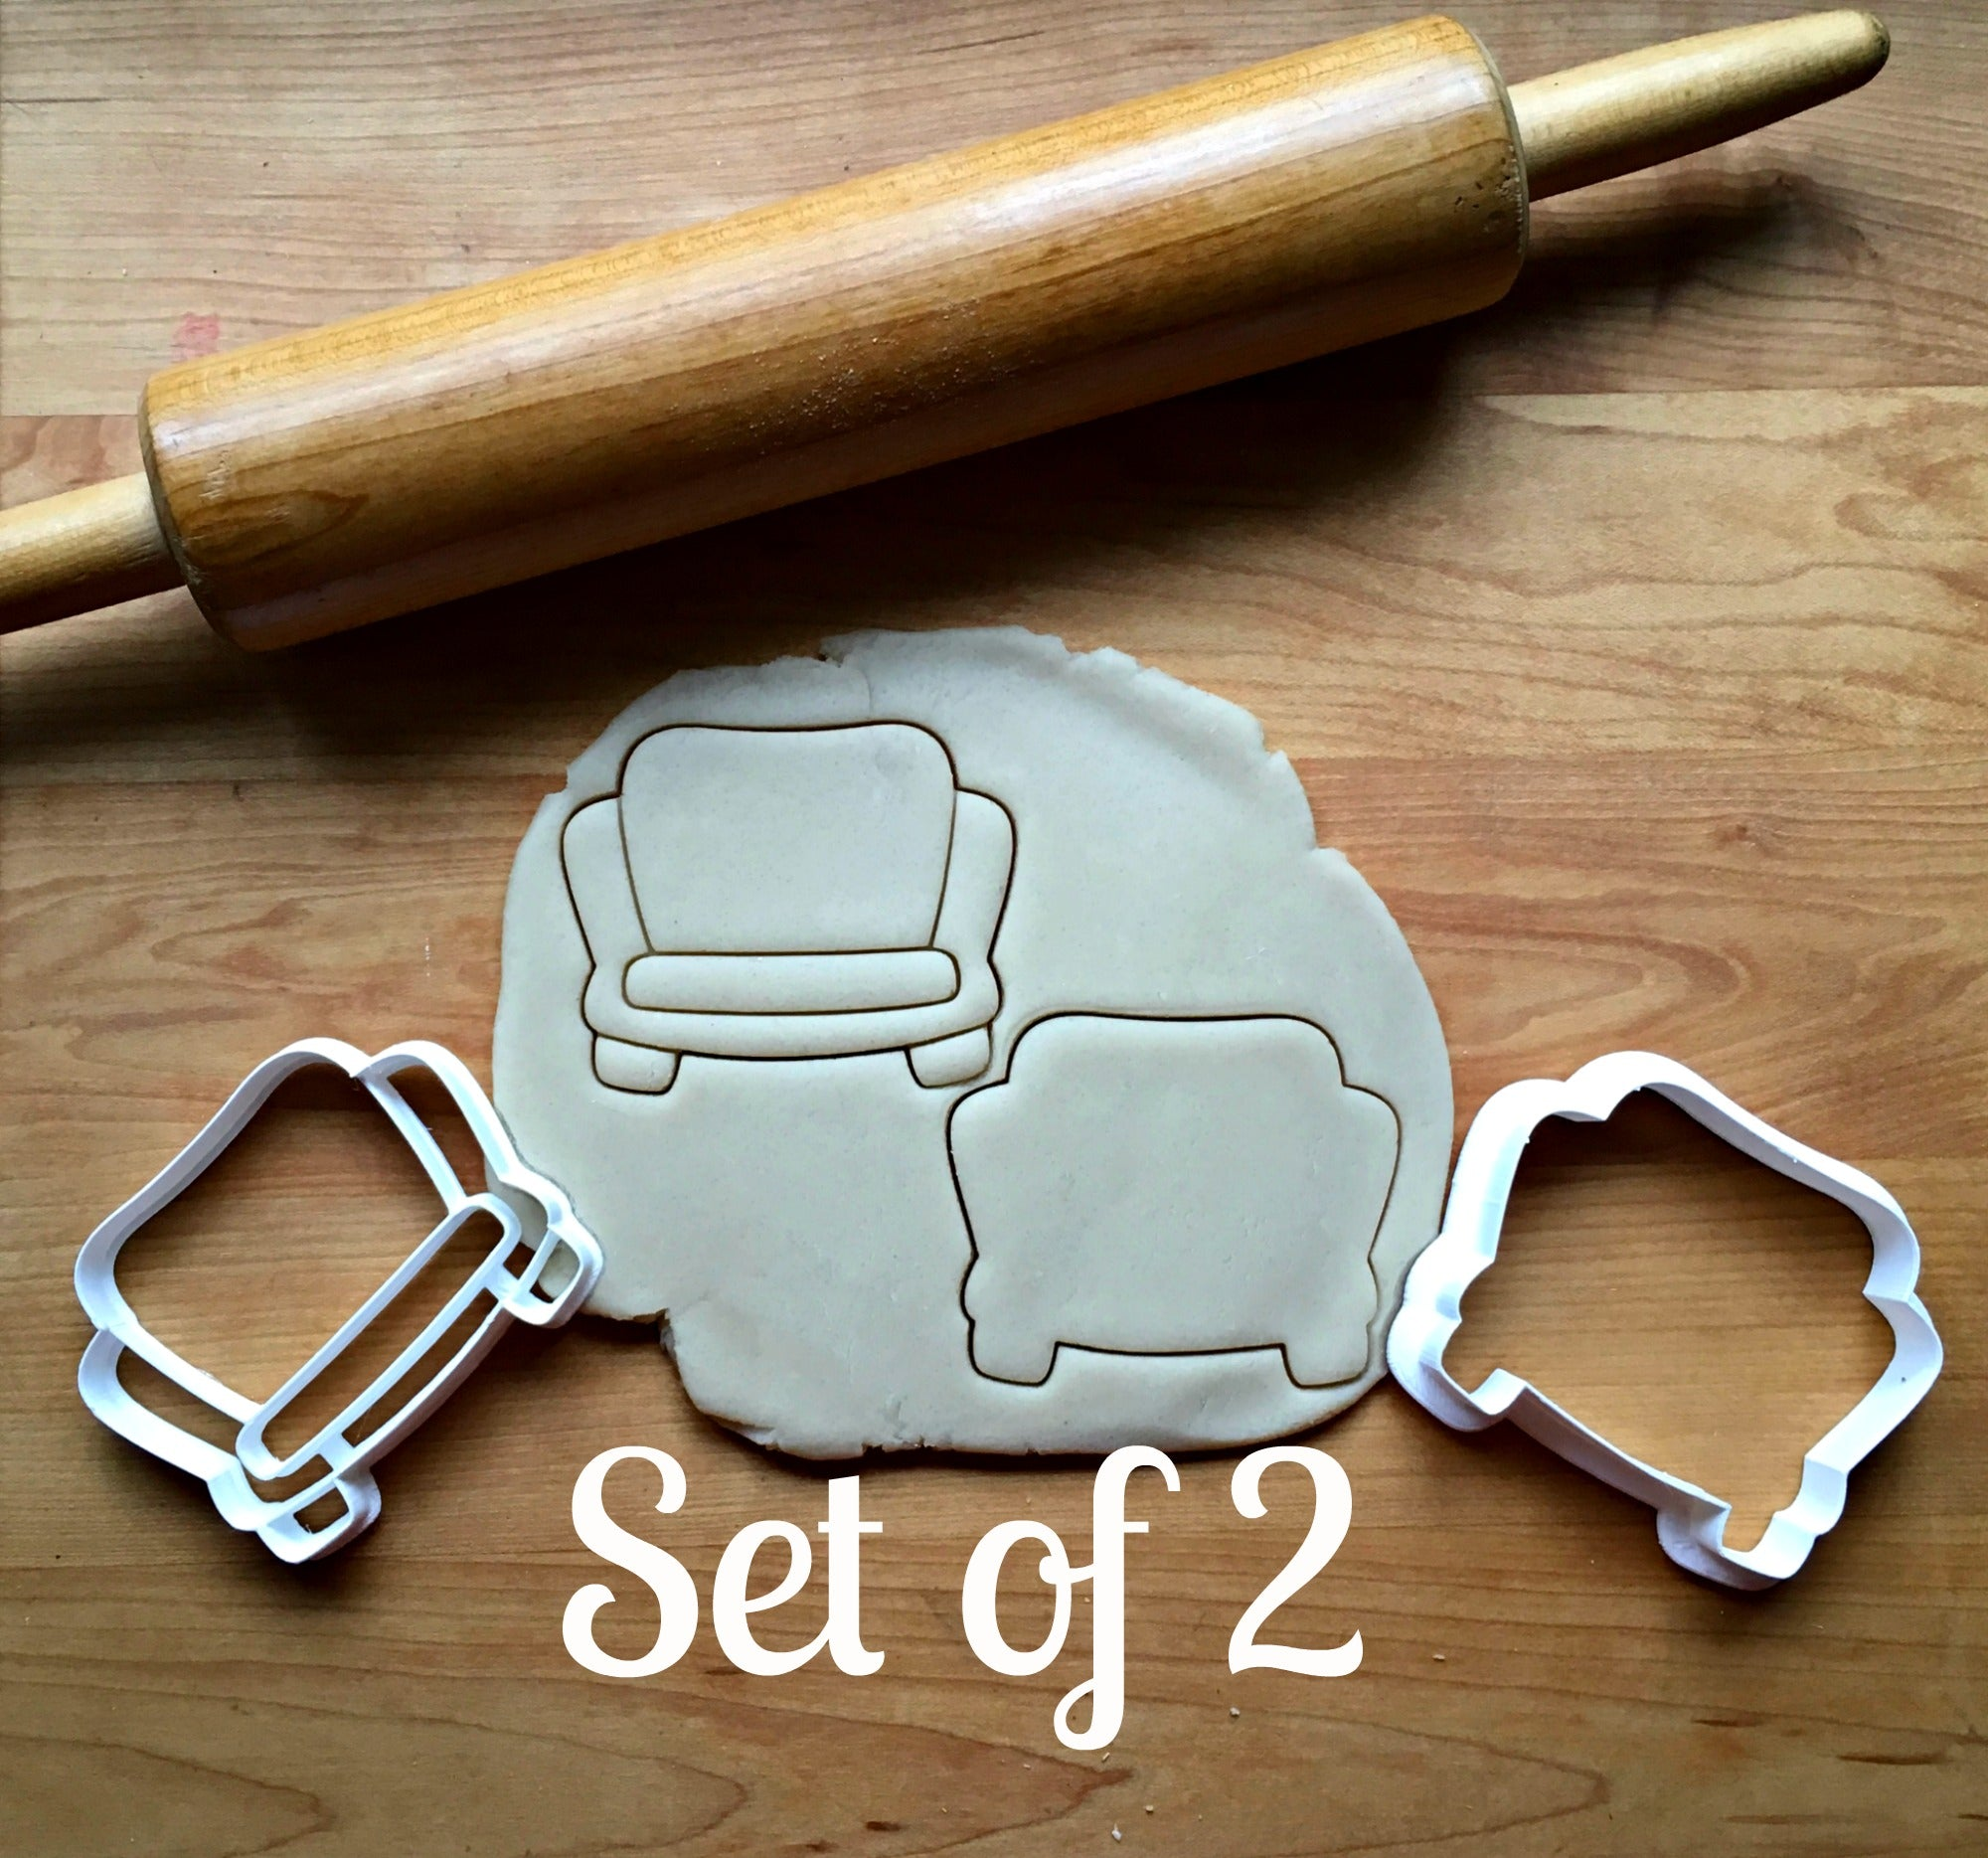 Set of 2 Couch Cookie Cutters/Dishwasher Safe